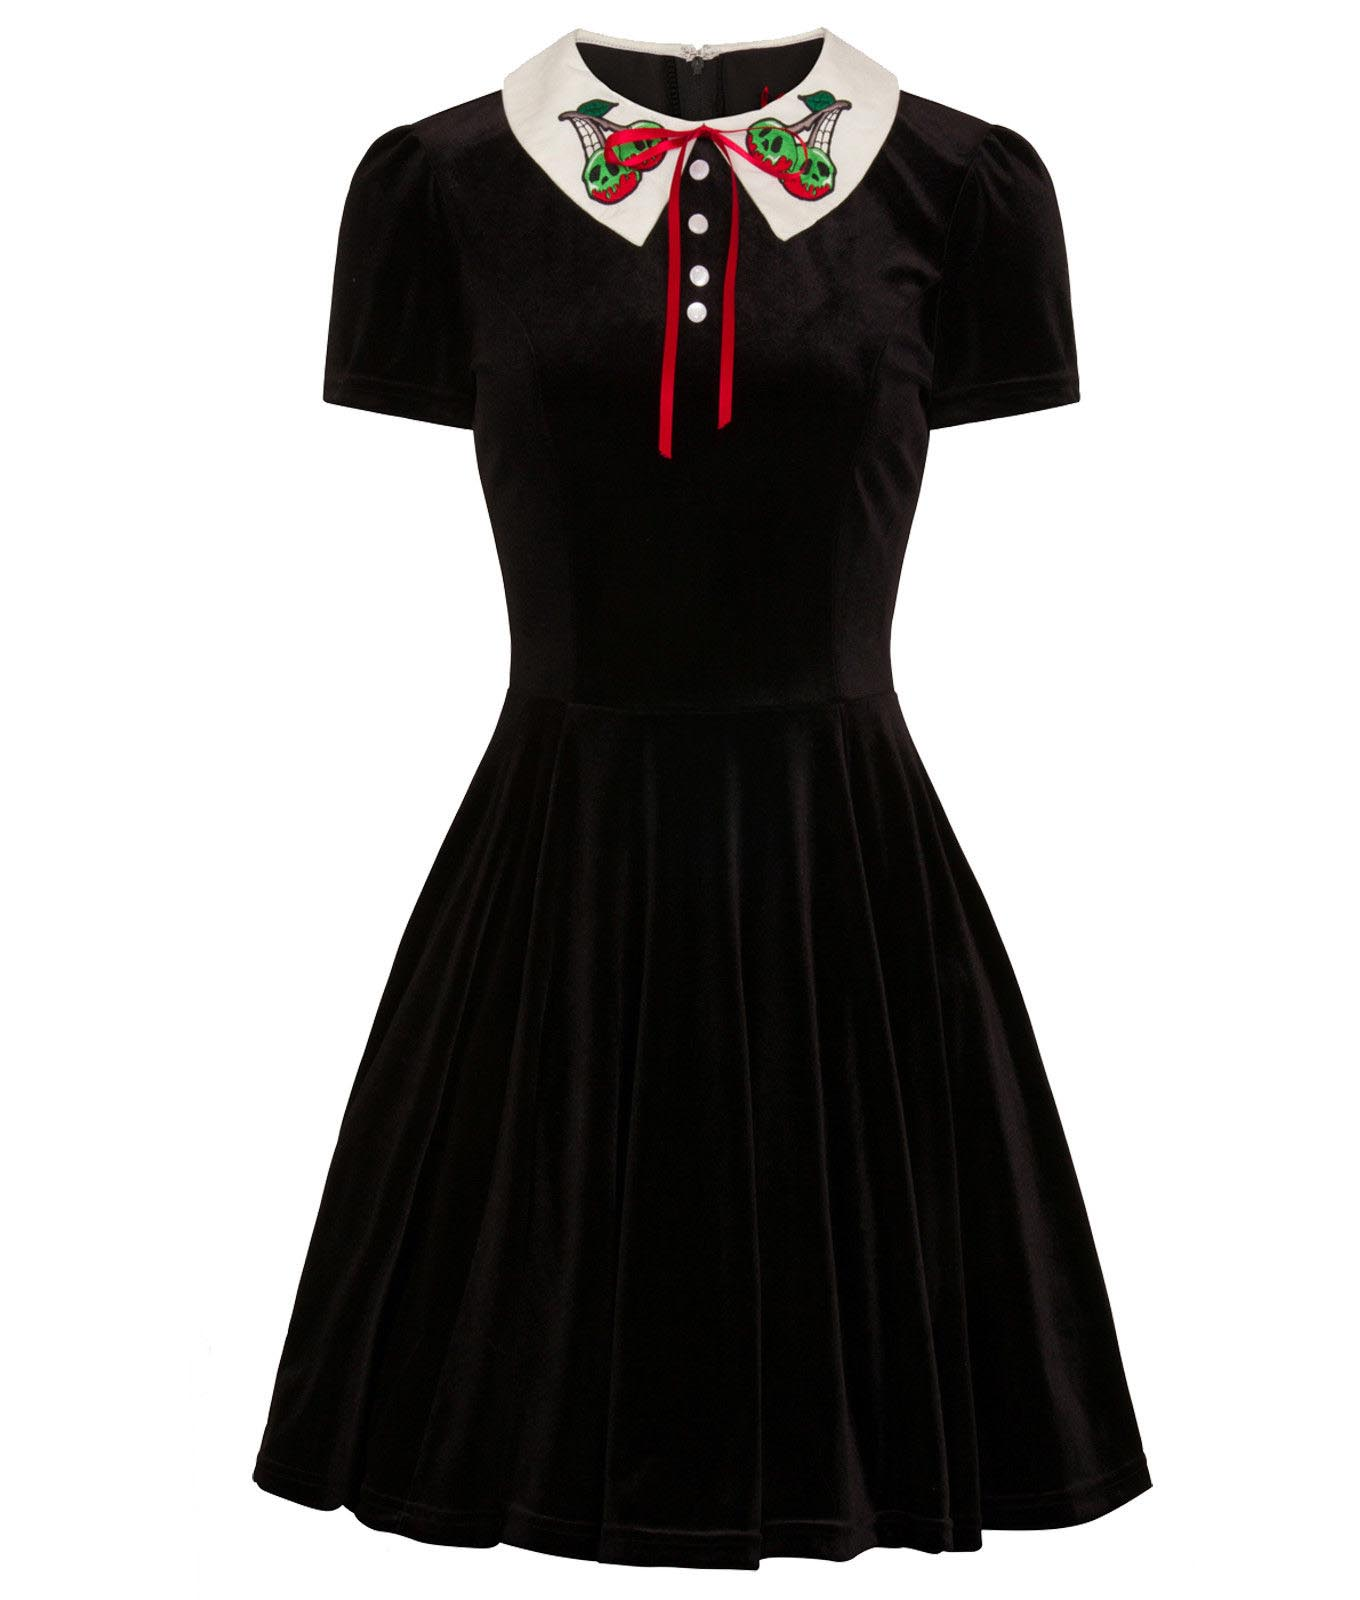 Hell-Bunny-Goth-Mini-Skater-Dress-NIGHTSHADE-Poison-Cherry-Black-Velvet-All-Size thumbnail 15